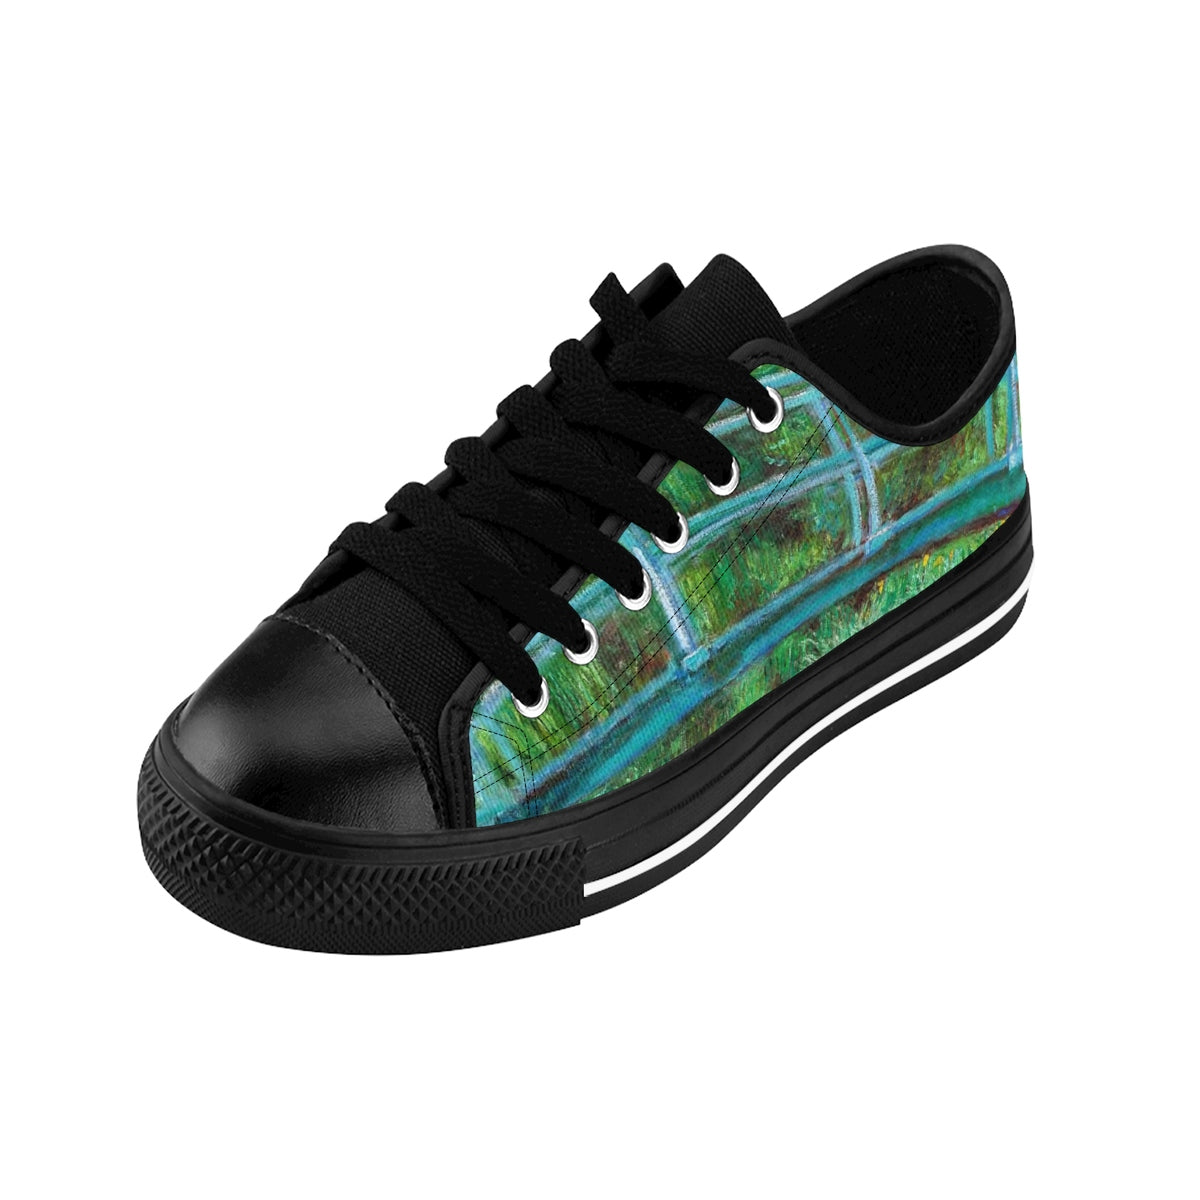 Monet Women's Sneakers